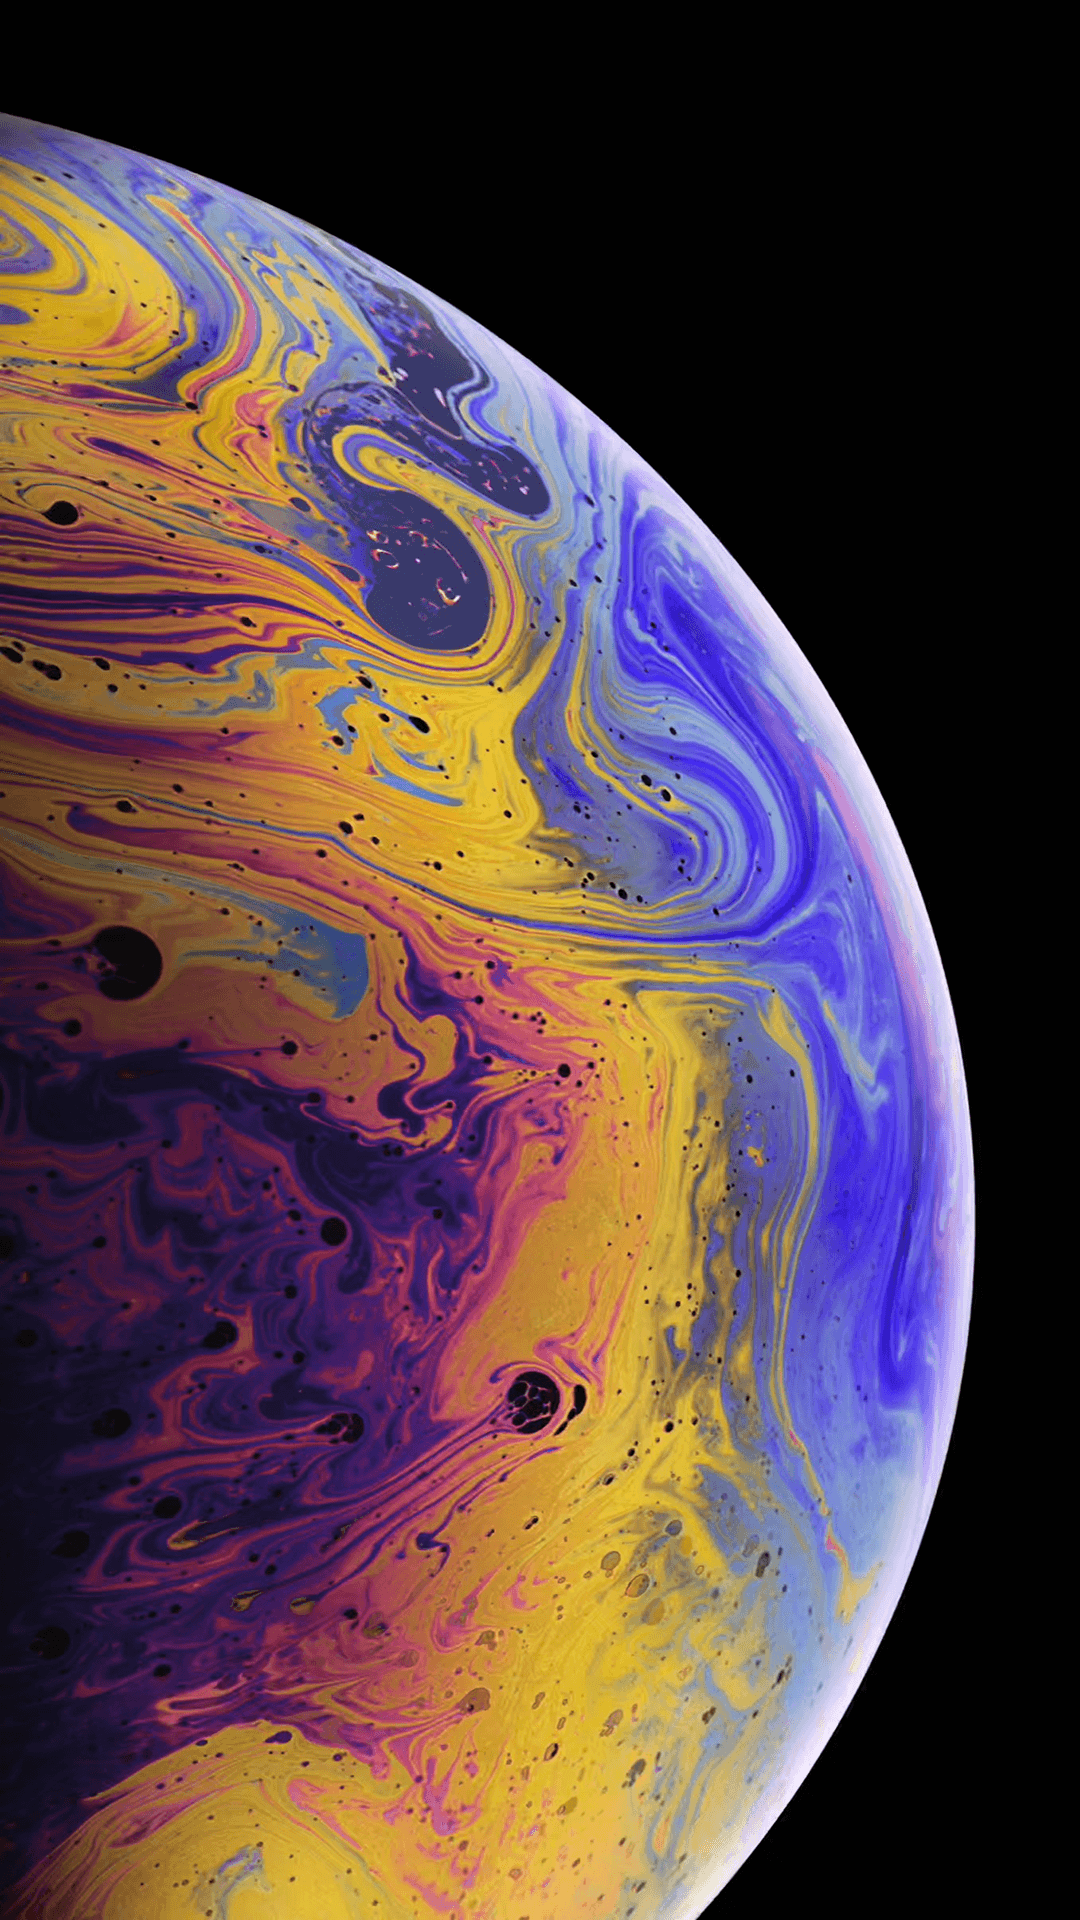 Iphone Xr 4k Wallpapers Wallpaper Cave